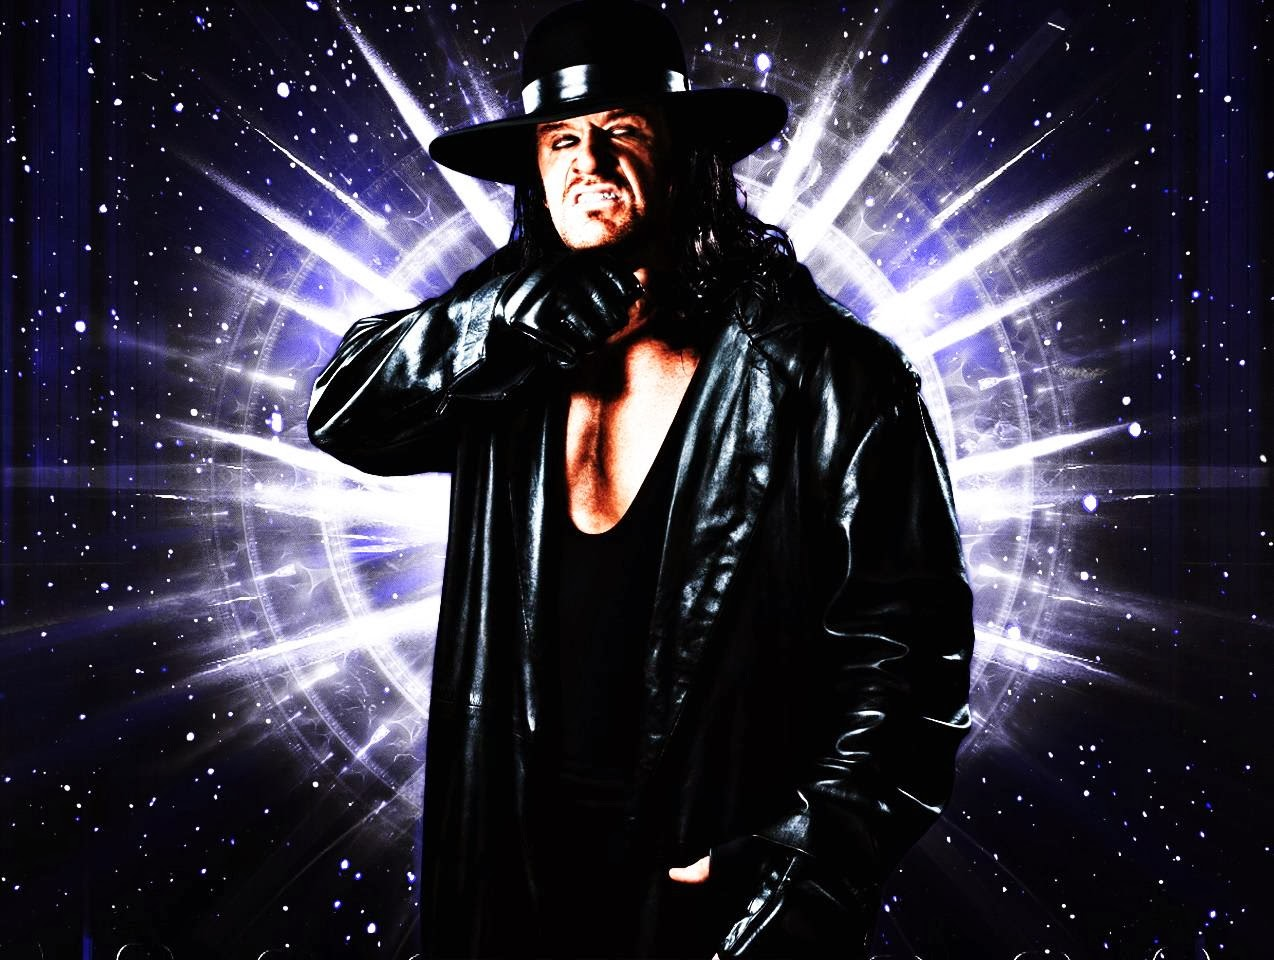 Free Undertaker Wallpaper